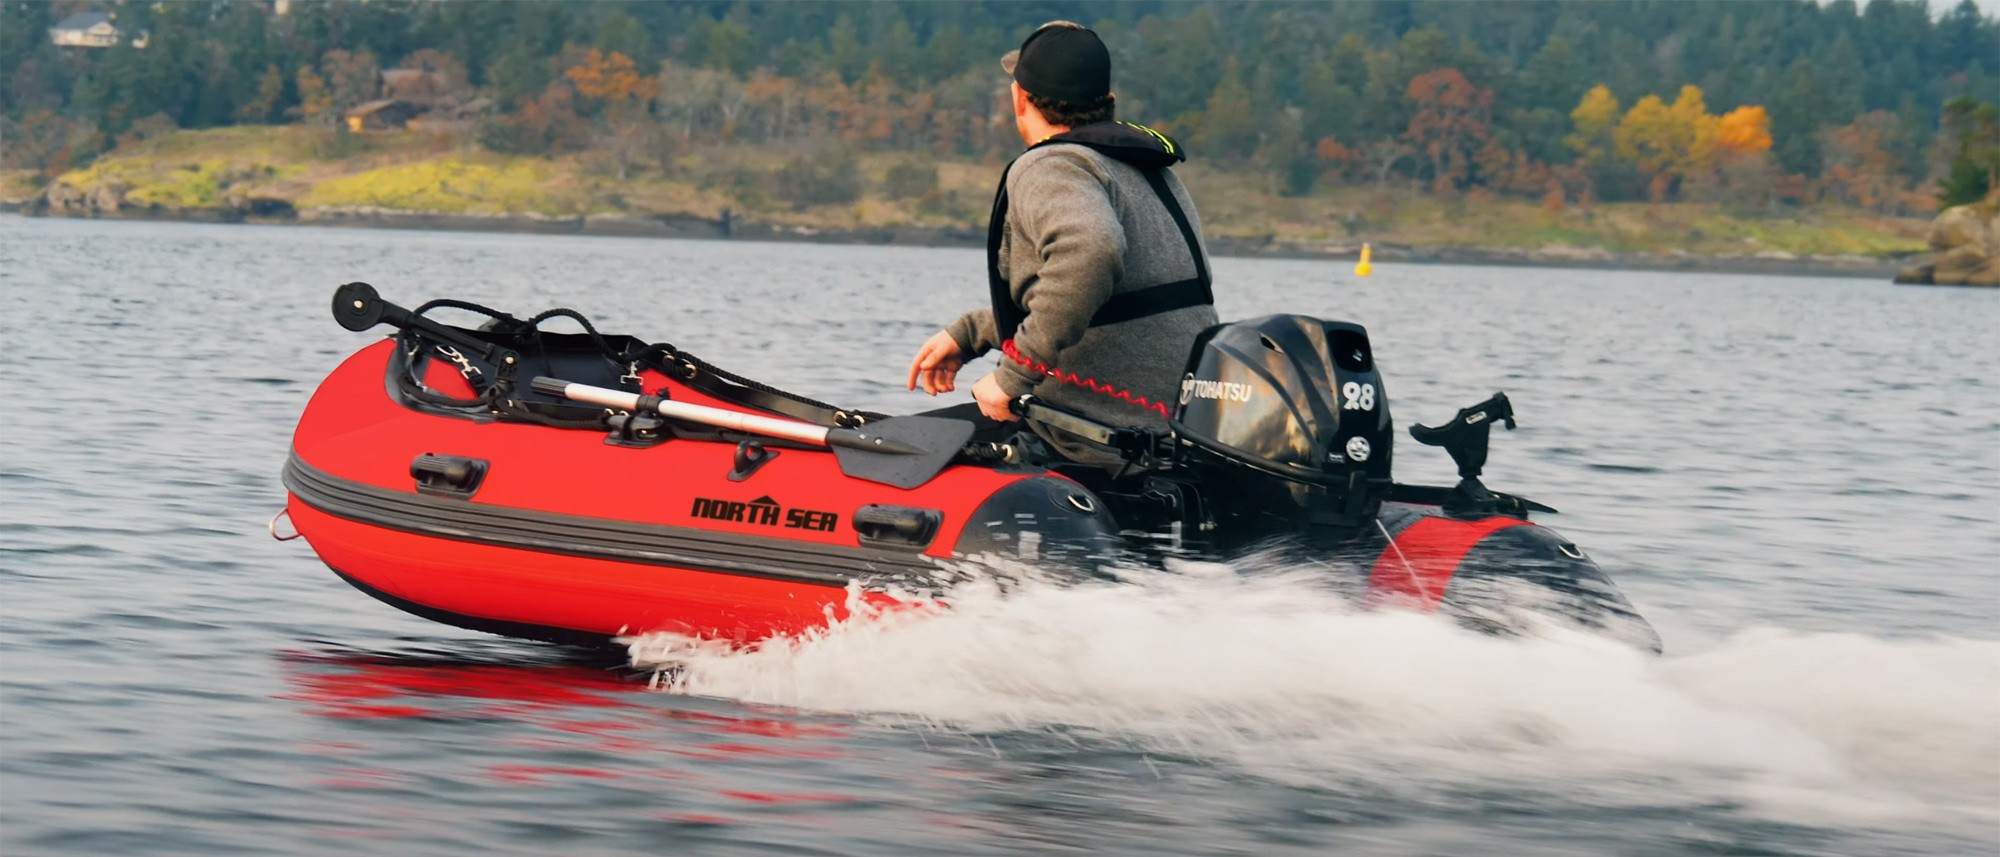 North Sea 360 3.6m Premium Inflatable Boat in Red